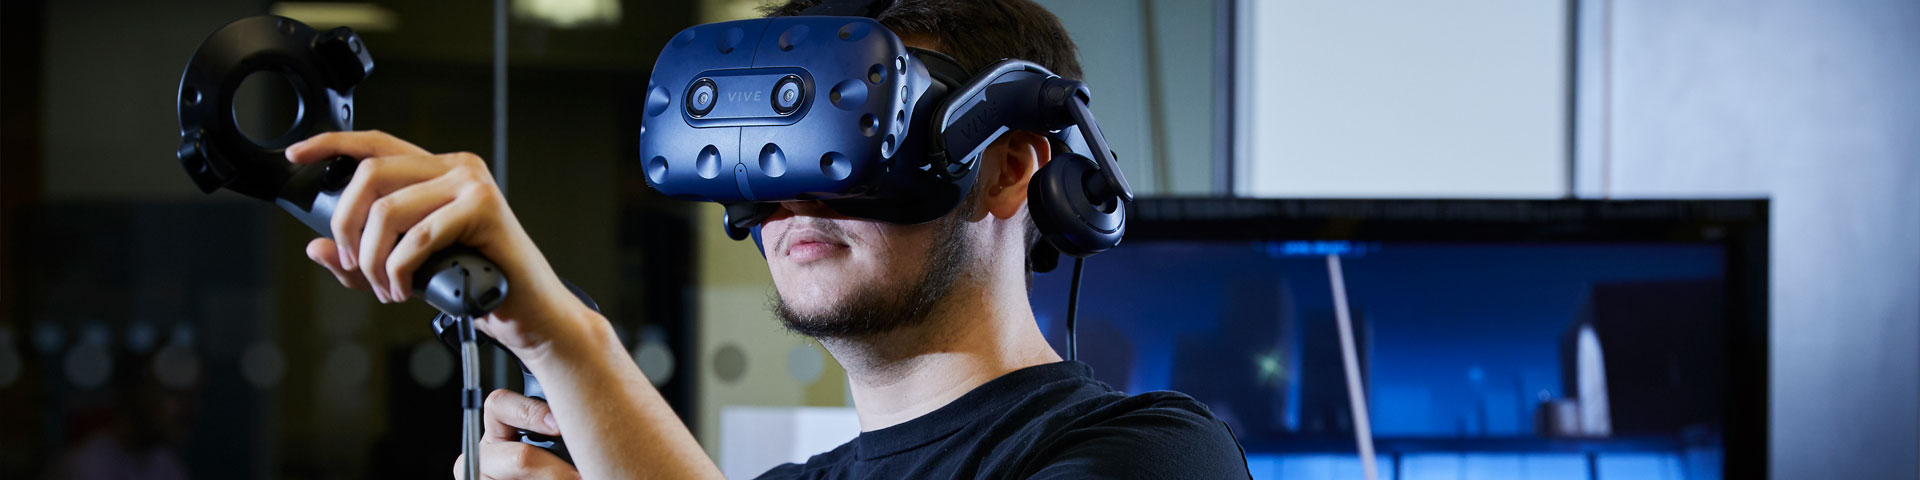 A person using a virtual reality headset